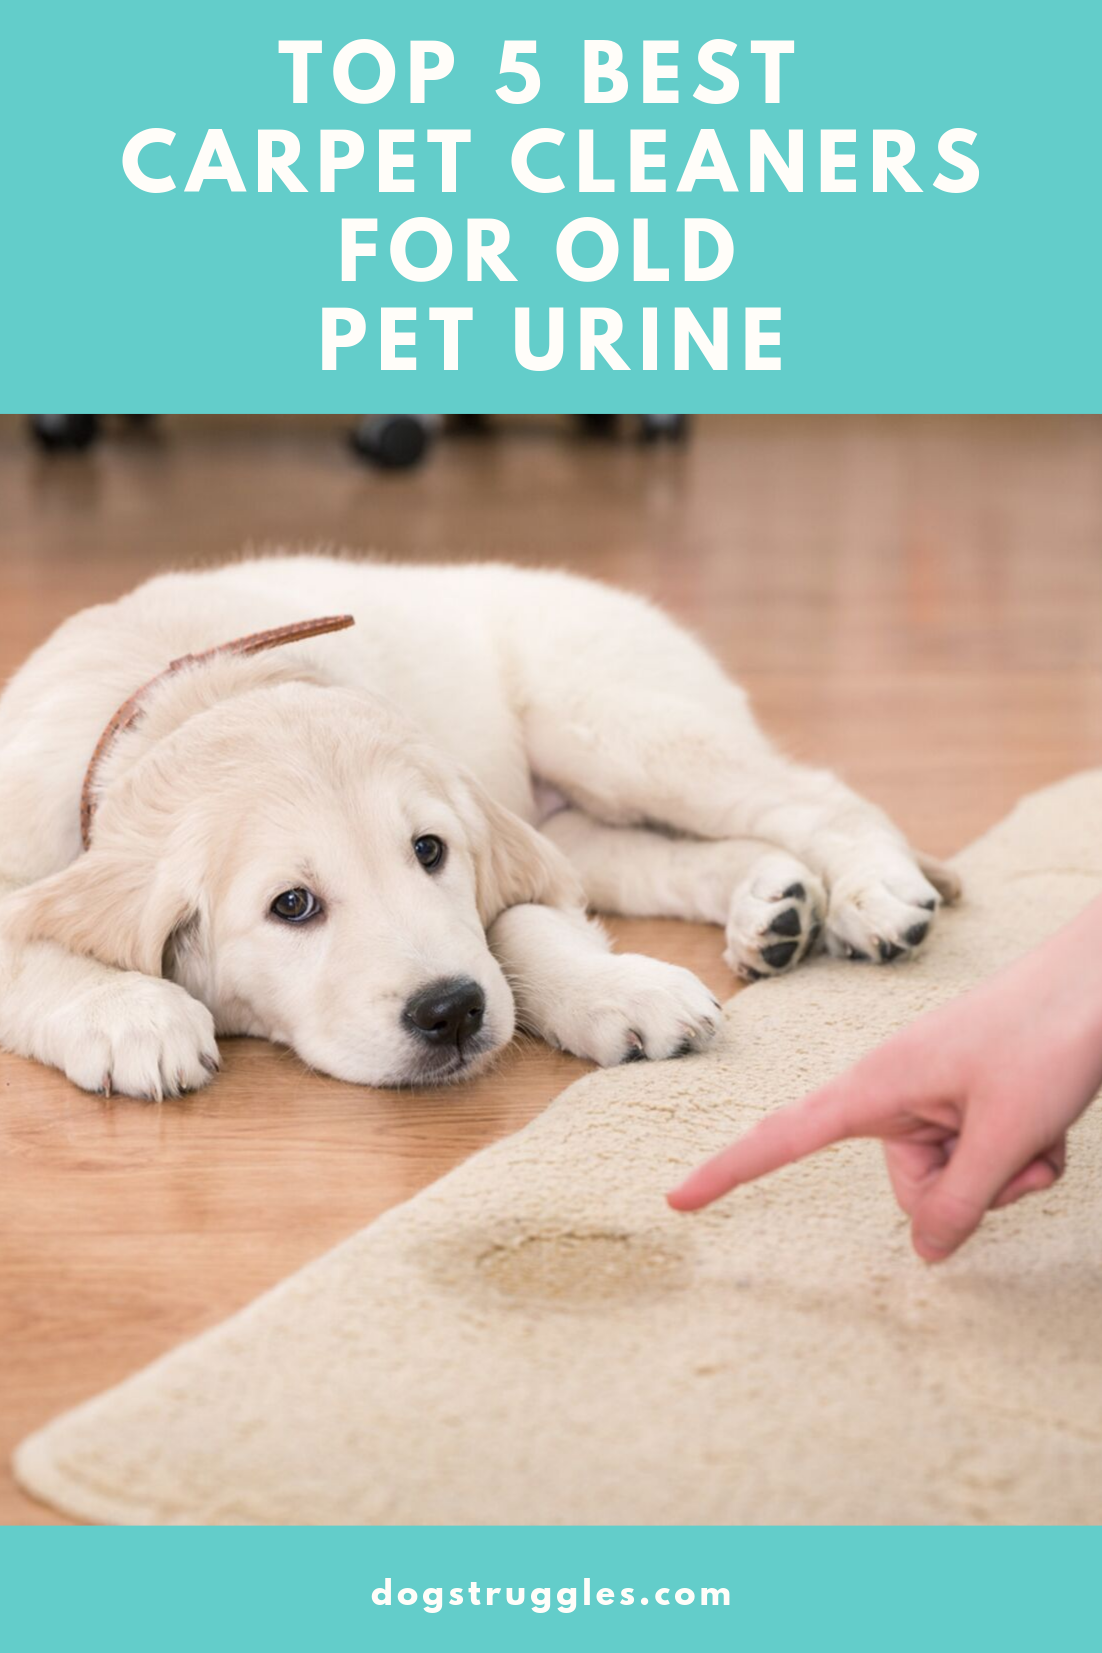 Top 5 Best Carpet Cleaners For Old Pet Urine Pet Urine Carpet Cleaners Best Carpet